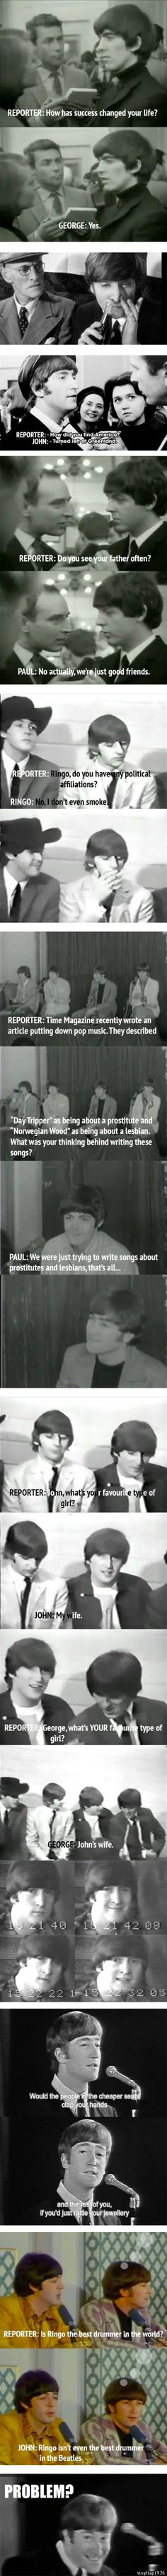 """Ringo isn't even the best drummer in the Beatles."" Lol!"